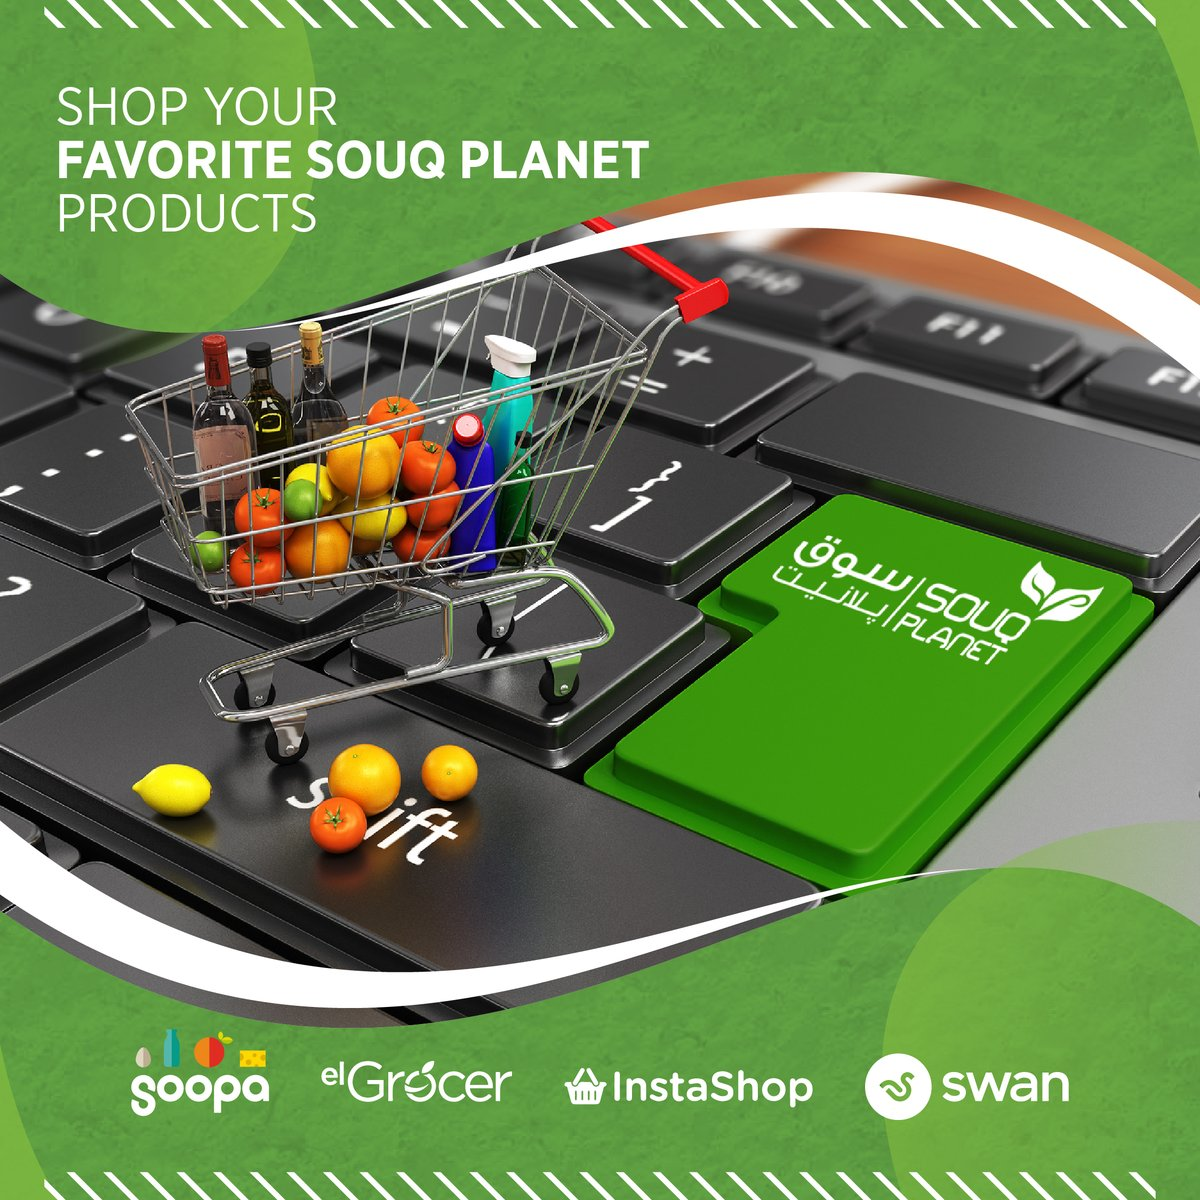 All you need to do is download the app you prefer and begin your shopping journey! Located in Dubai? Choose @shopwithswan 🌱   #souqplanet #smartshopper #onlineshopping #groceryshopping #inabudhabi #dubai #alain #uae #vegan #madinatzayed #safeplanet #stayhome #socialdistancing https://t.co/7fHTlgVmua